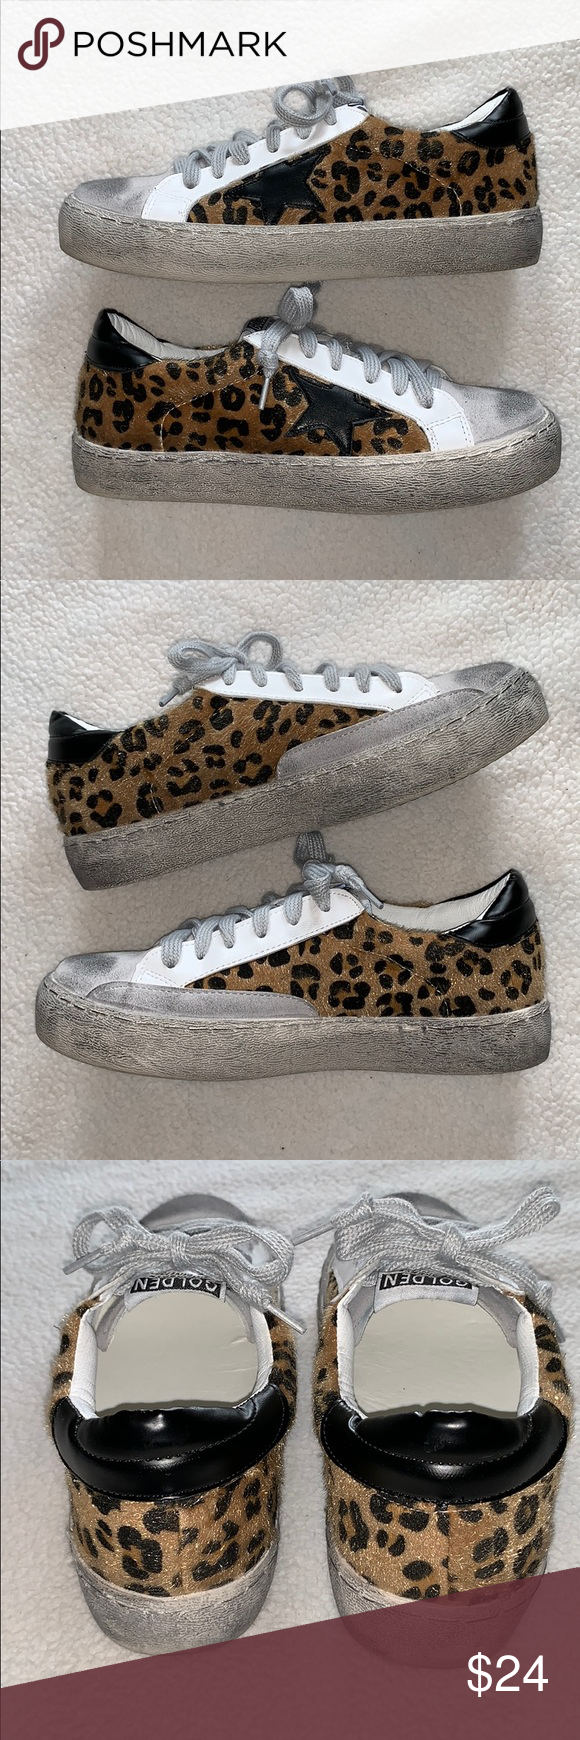 Golden Goose *DUPES* | Shein shoes